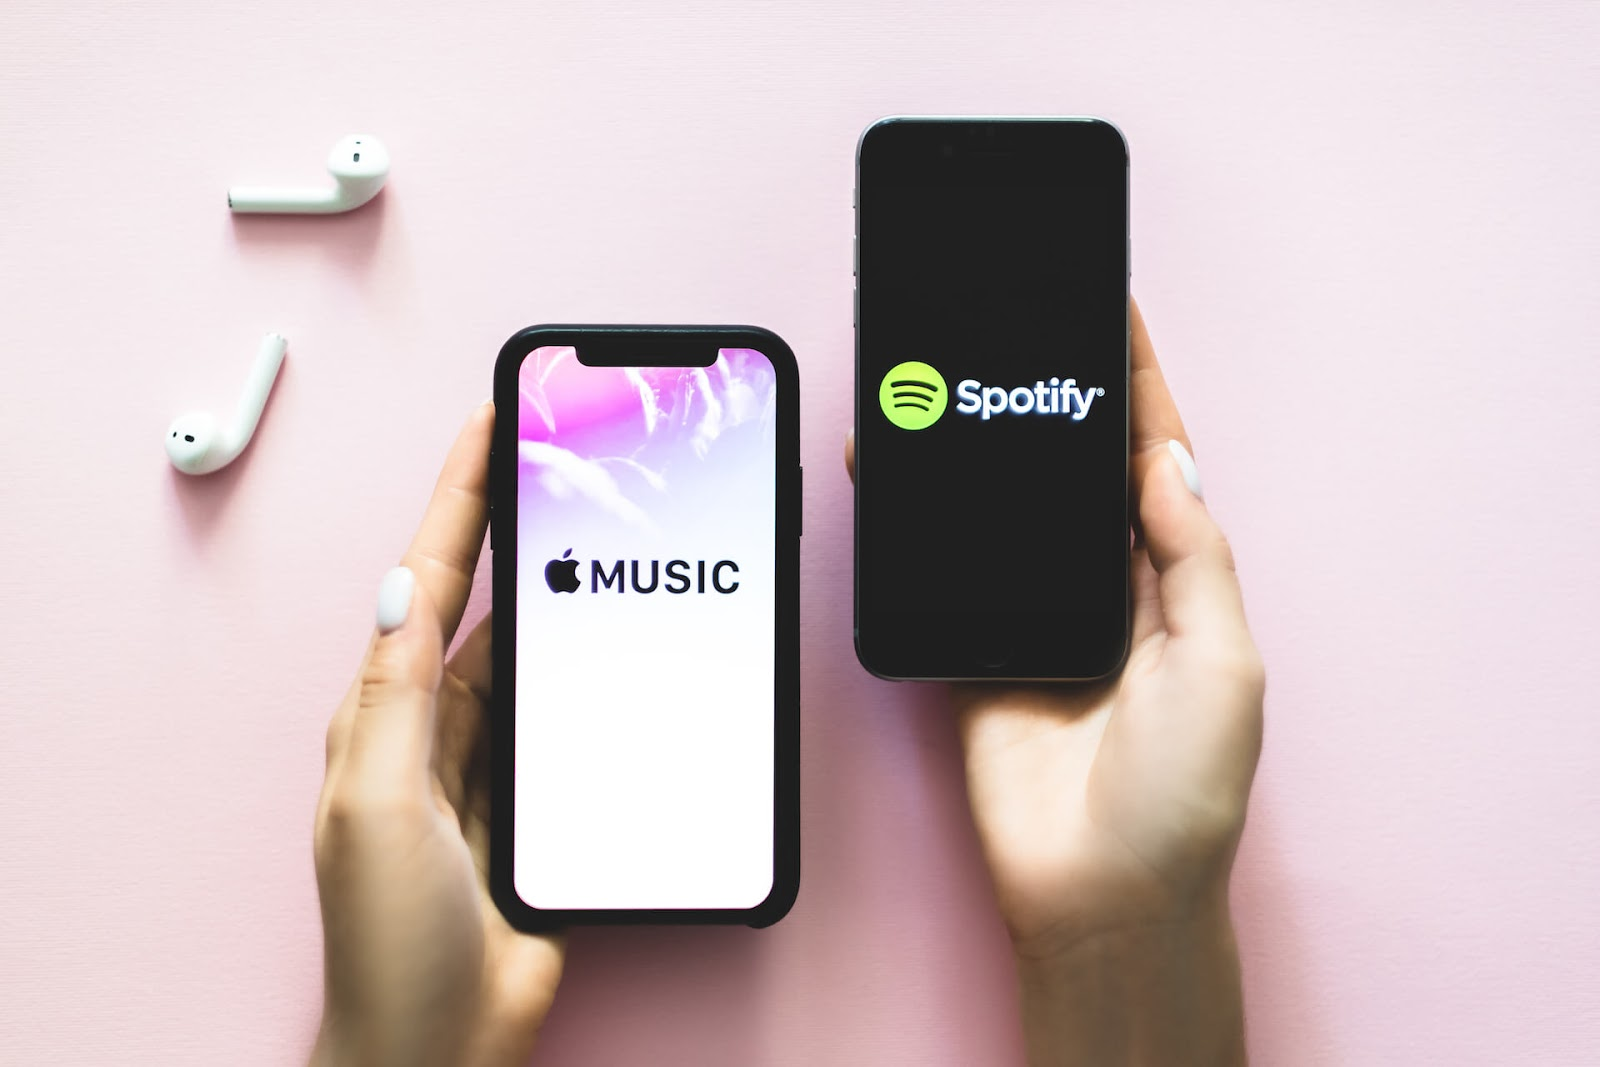 Woman holding a phone that says Apple music and one that says Spotify